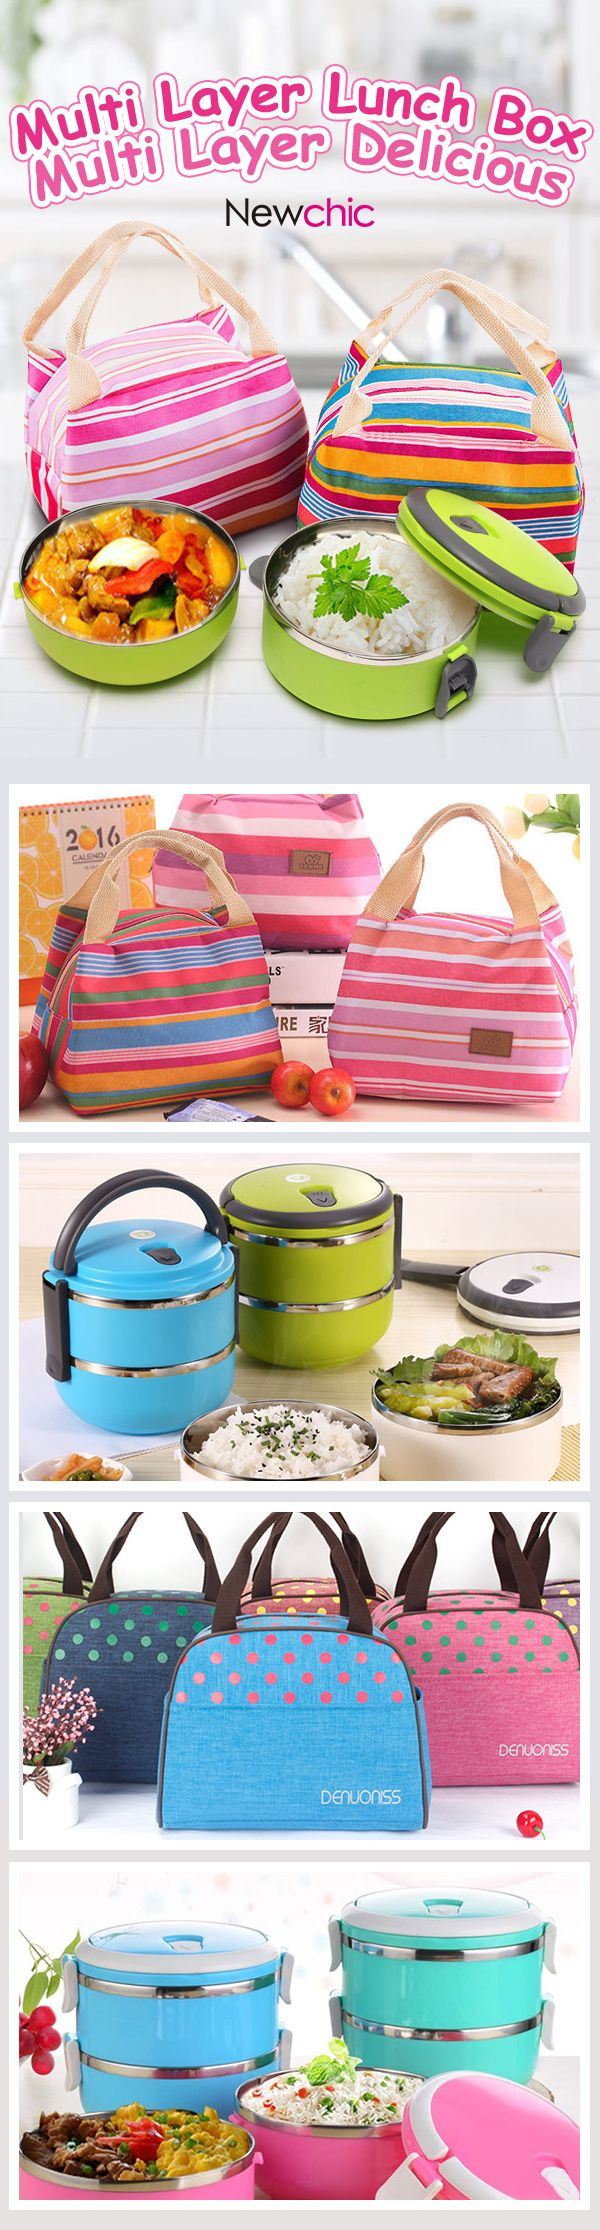 Lunch bags and lunch boxes product select at Newchic.com